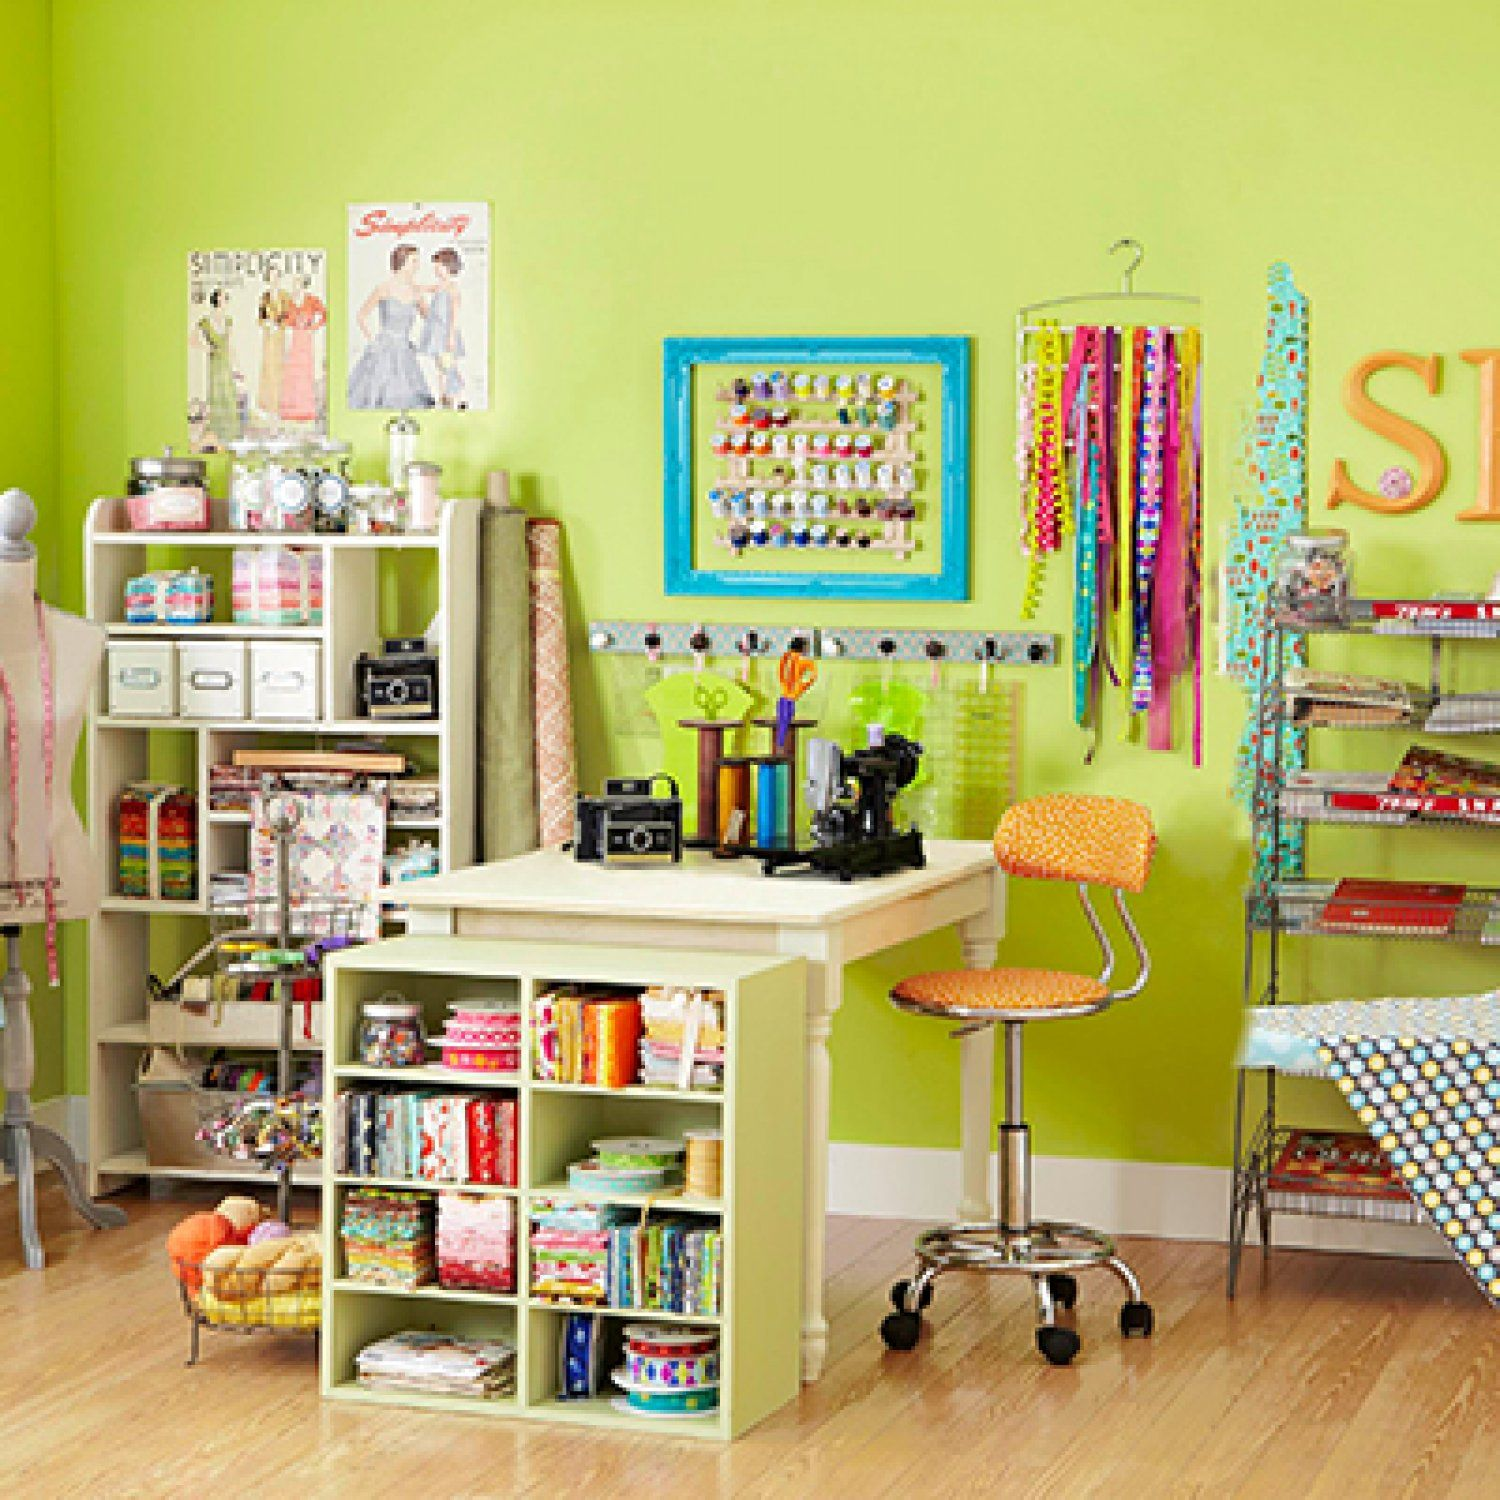 Maximize Your Creative Space Using These Ideas For Storing Your Stash,  Tools, And Supplies · Sewing Room DesignSewing ...